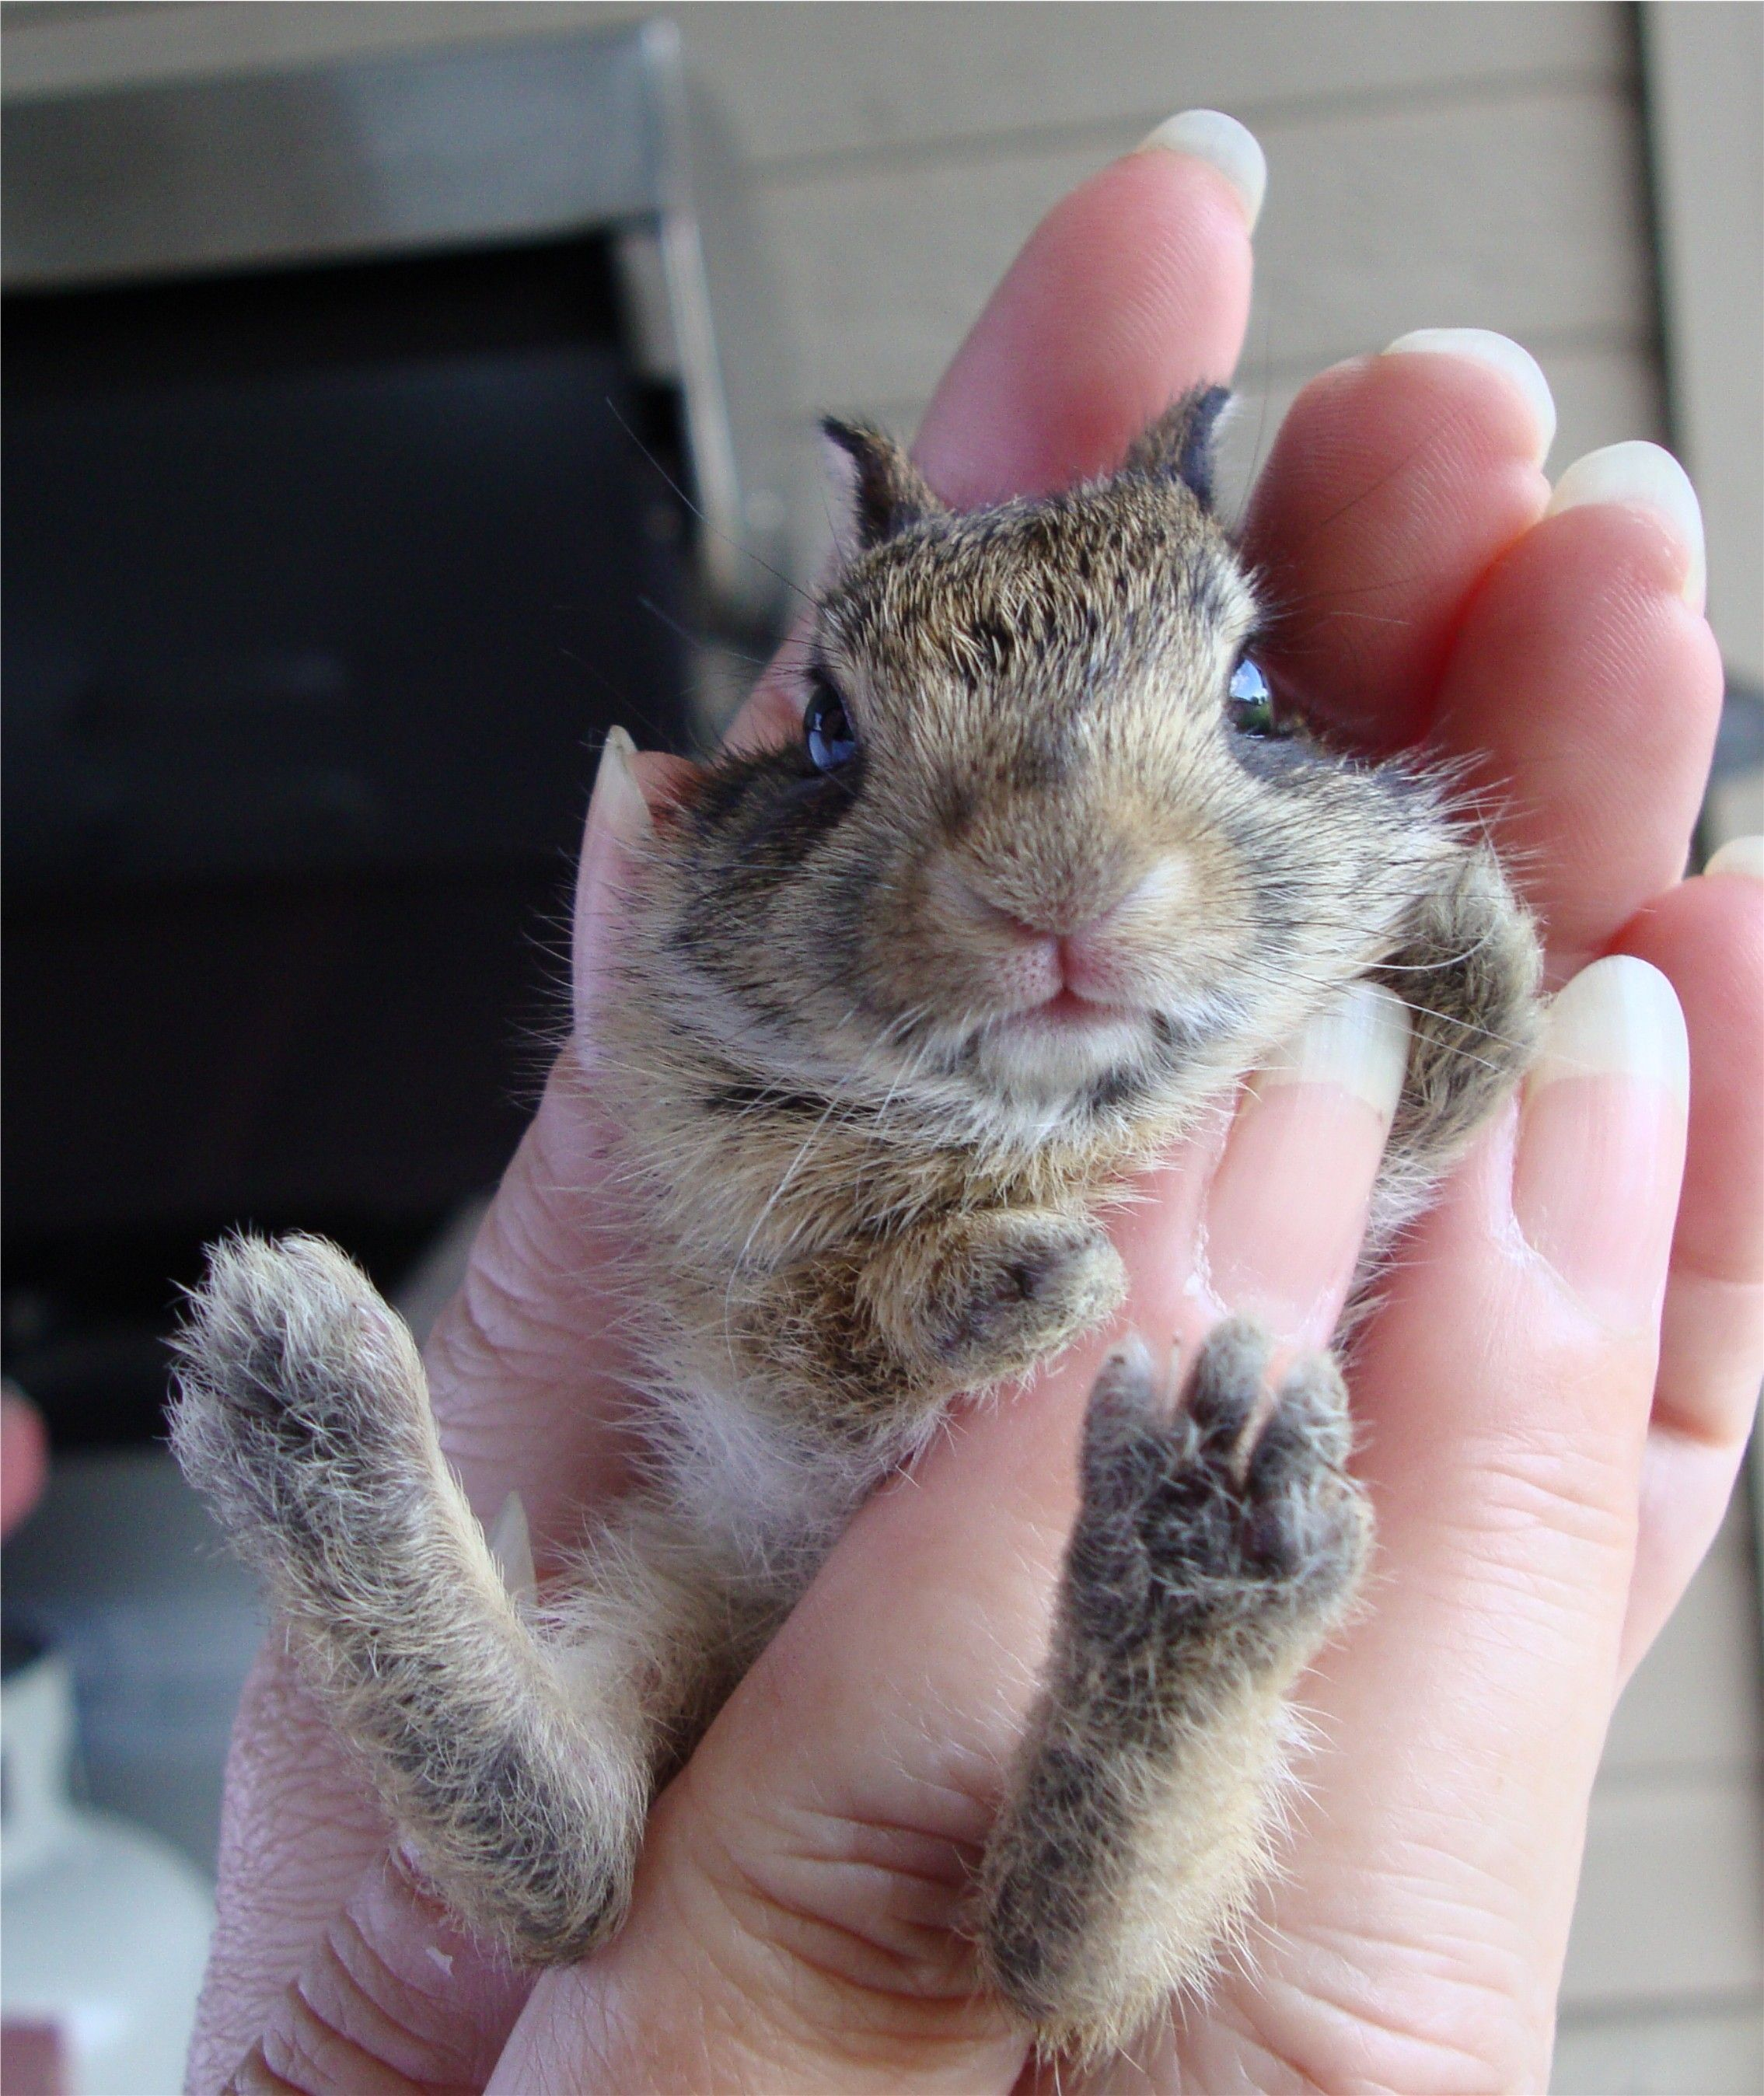 Every year rabbits have babies in the big flower pots in ...